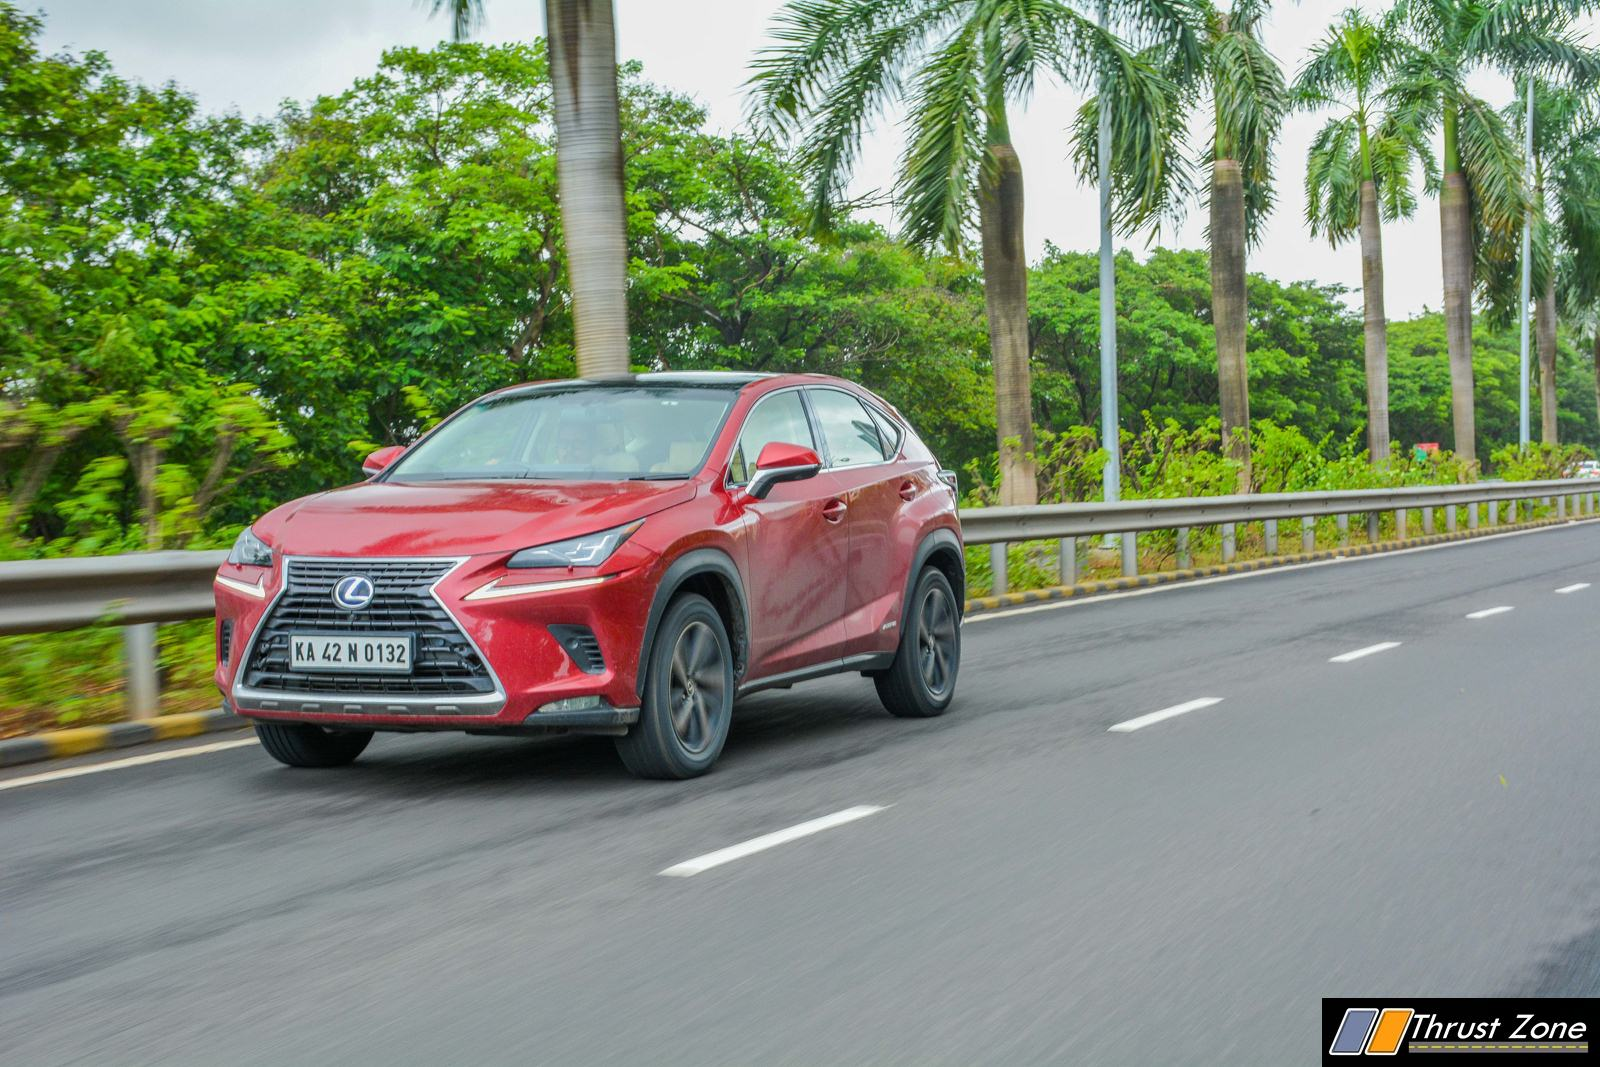 https://www.thrustzone.com/wp-content/uploads/2018/07/2018-Lexus-NX300h-India-Review-4.jpg